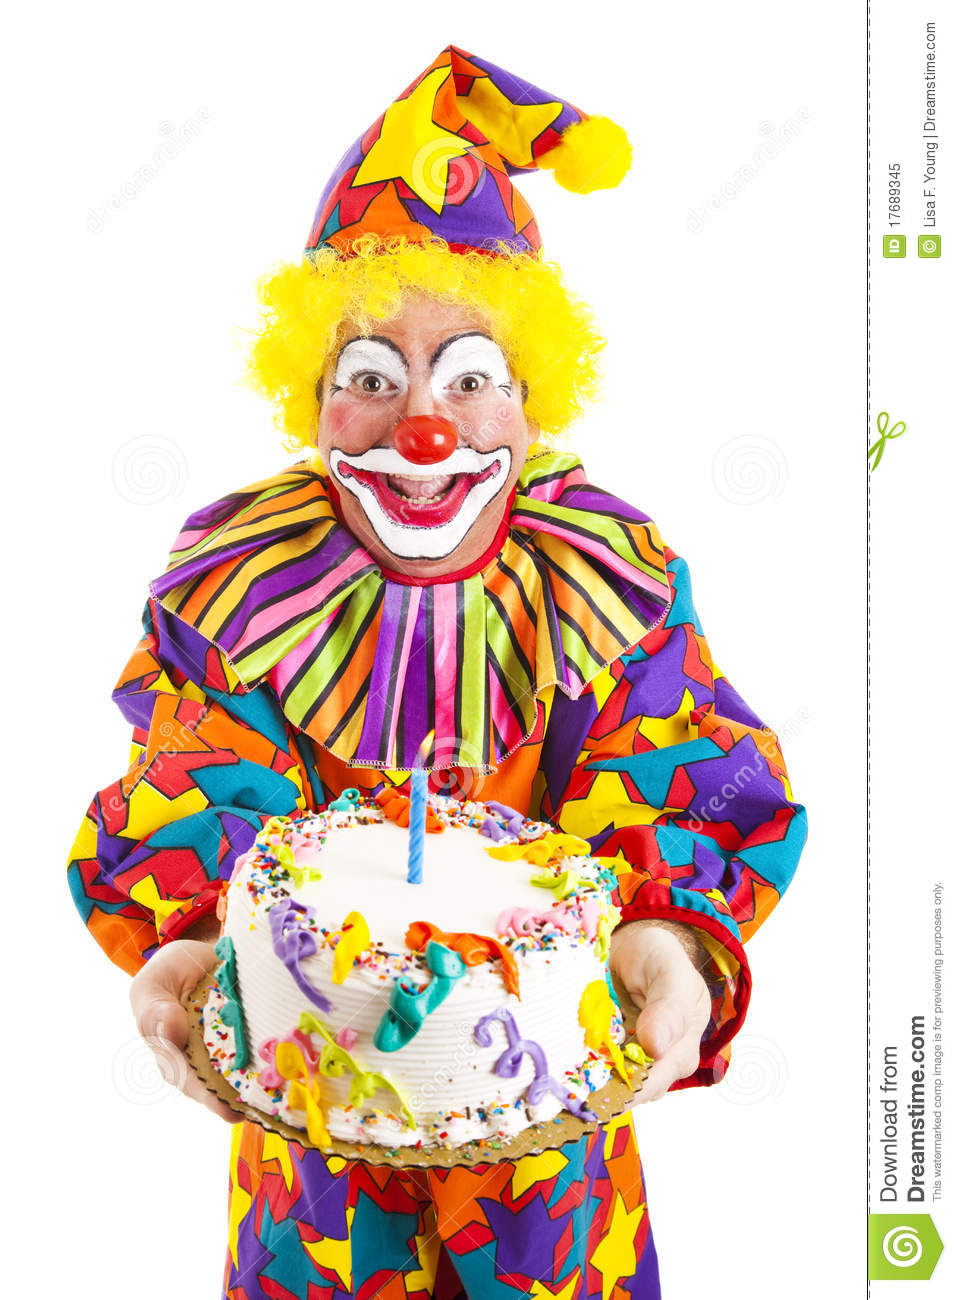 Birthday Candle Hat Birthday Clown With Cake Stock Image. Image Of Candle